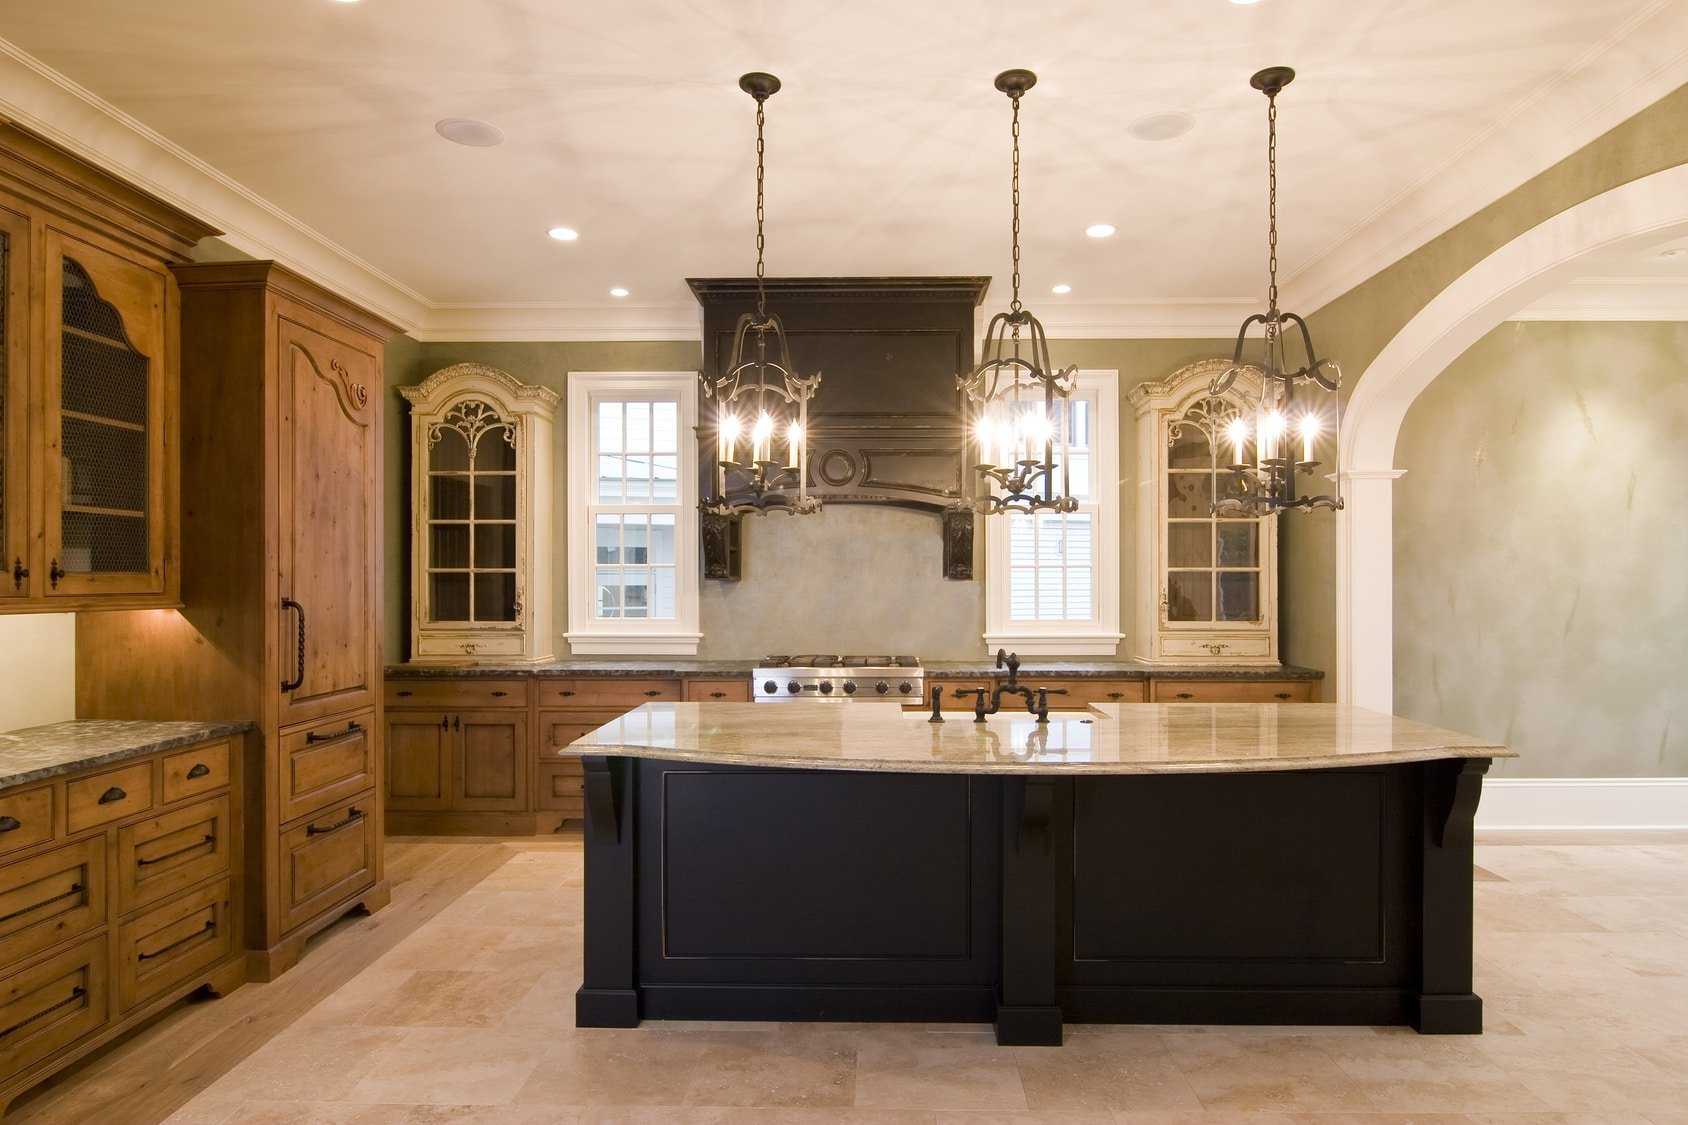 Opulent Kitchen In Complementary Colors With Granite Island